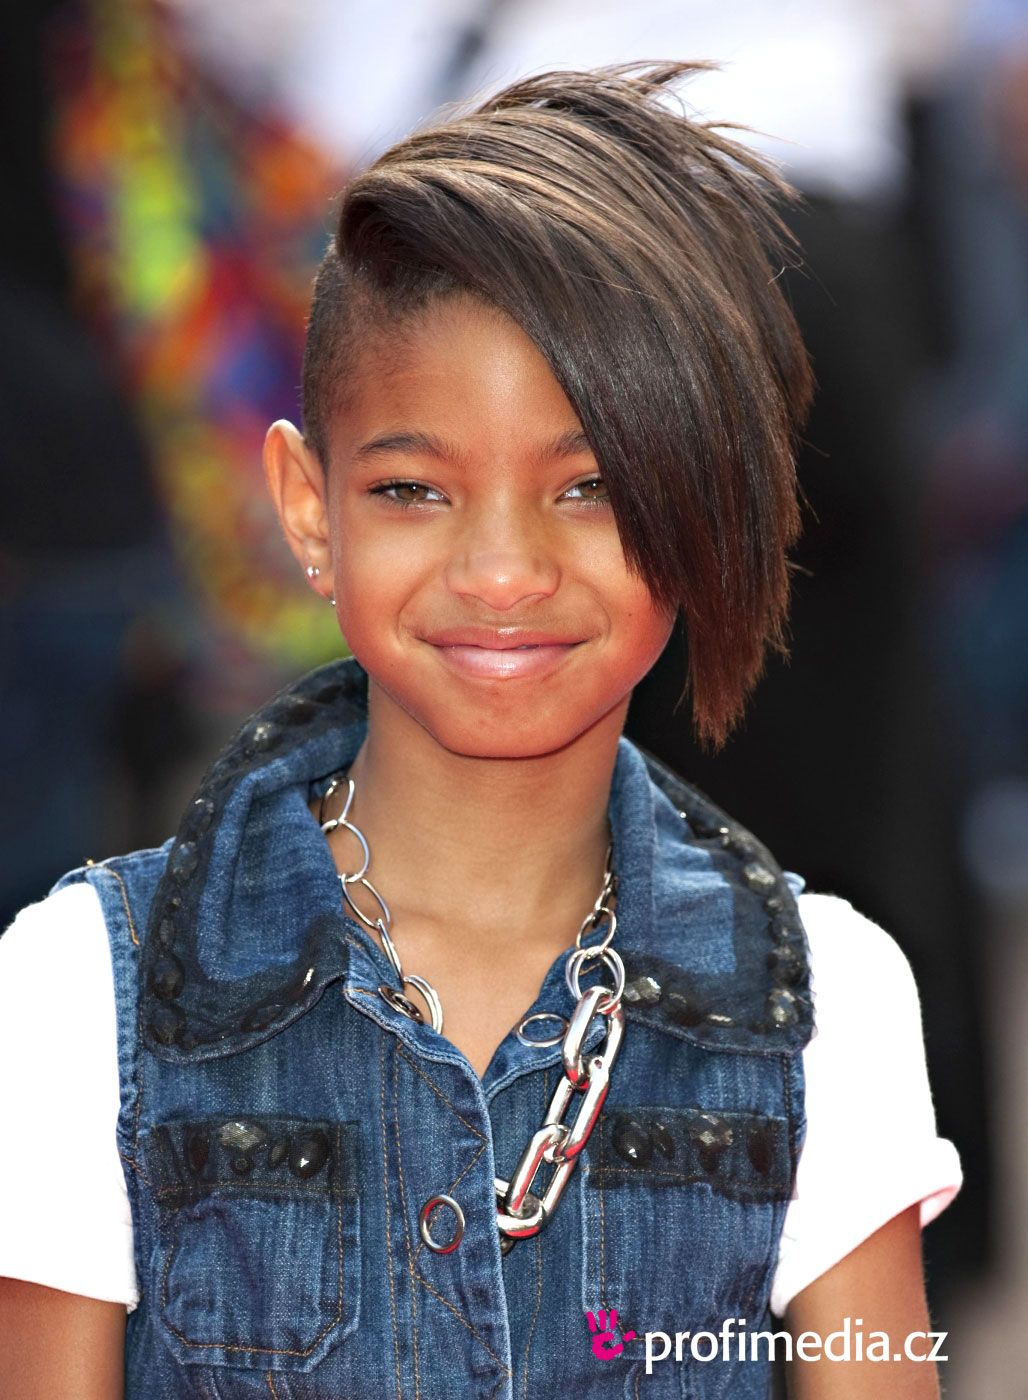 Willow Smith Hairstyles Prom Hairstyle Willow Smith Willow Smith Hair Styles Hairstyle Natural Hair Styles